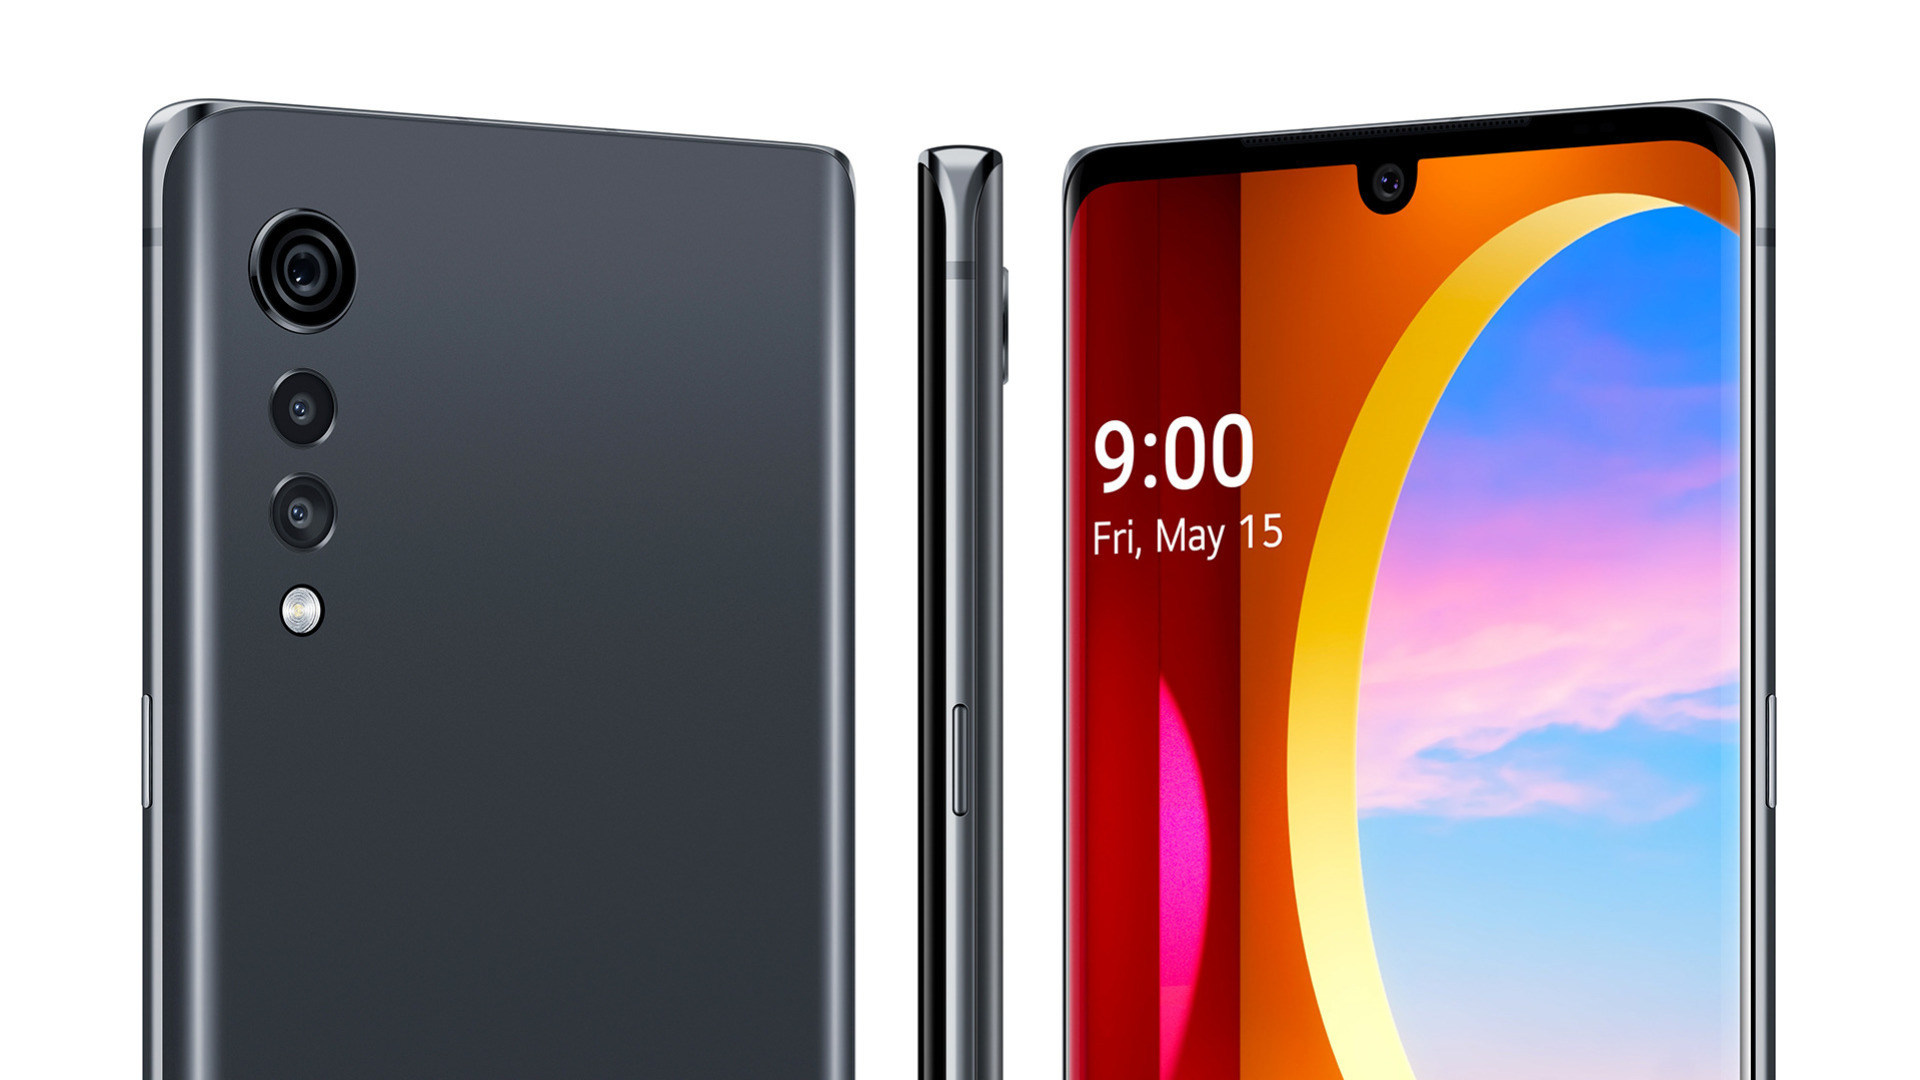 Smartphones, Display, LG, OLED, notch, Triple-Kamera, LG Velvet, Raindrop, Selfie-Kamera